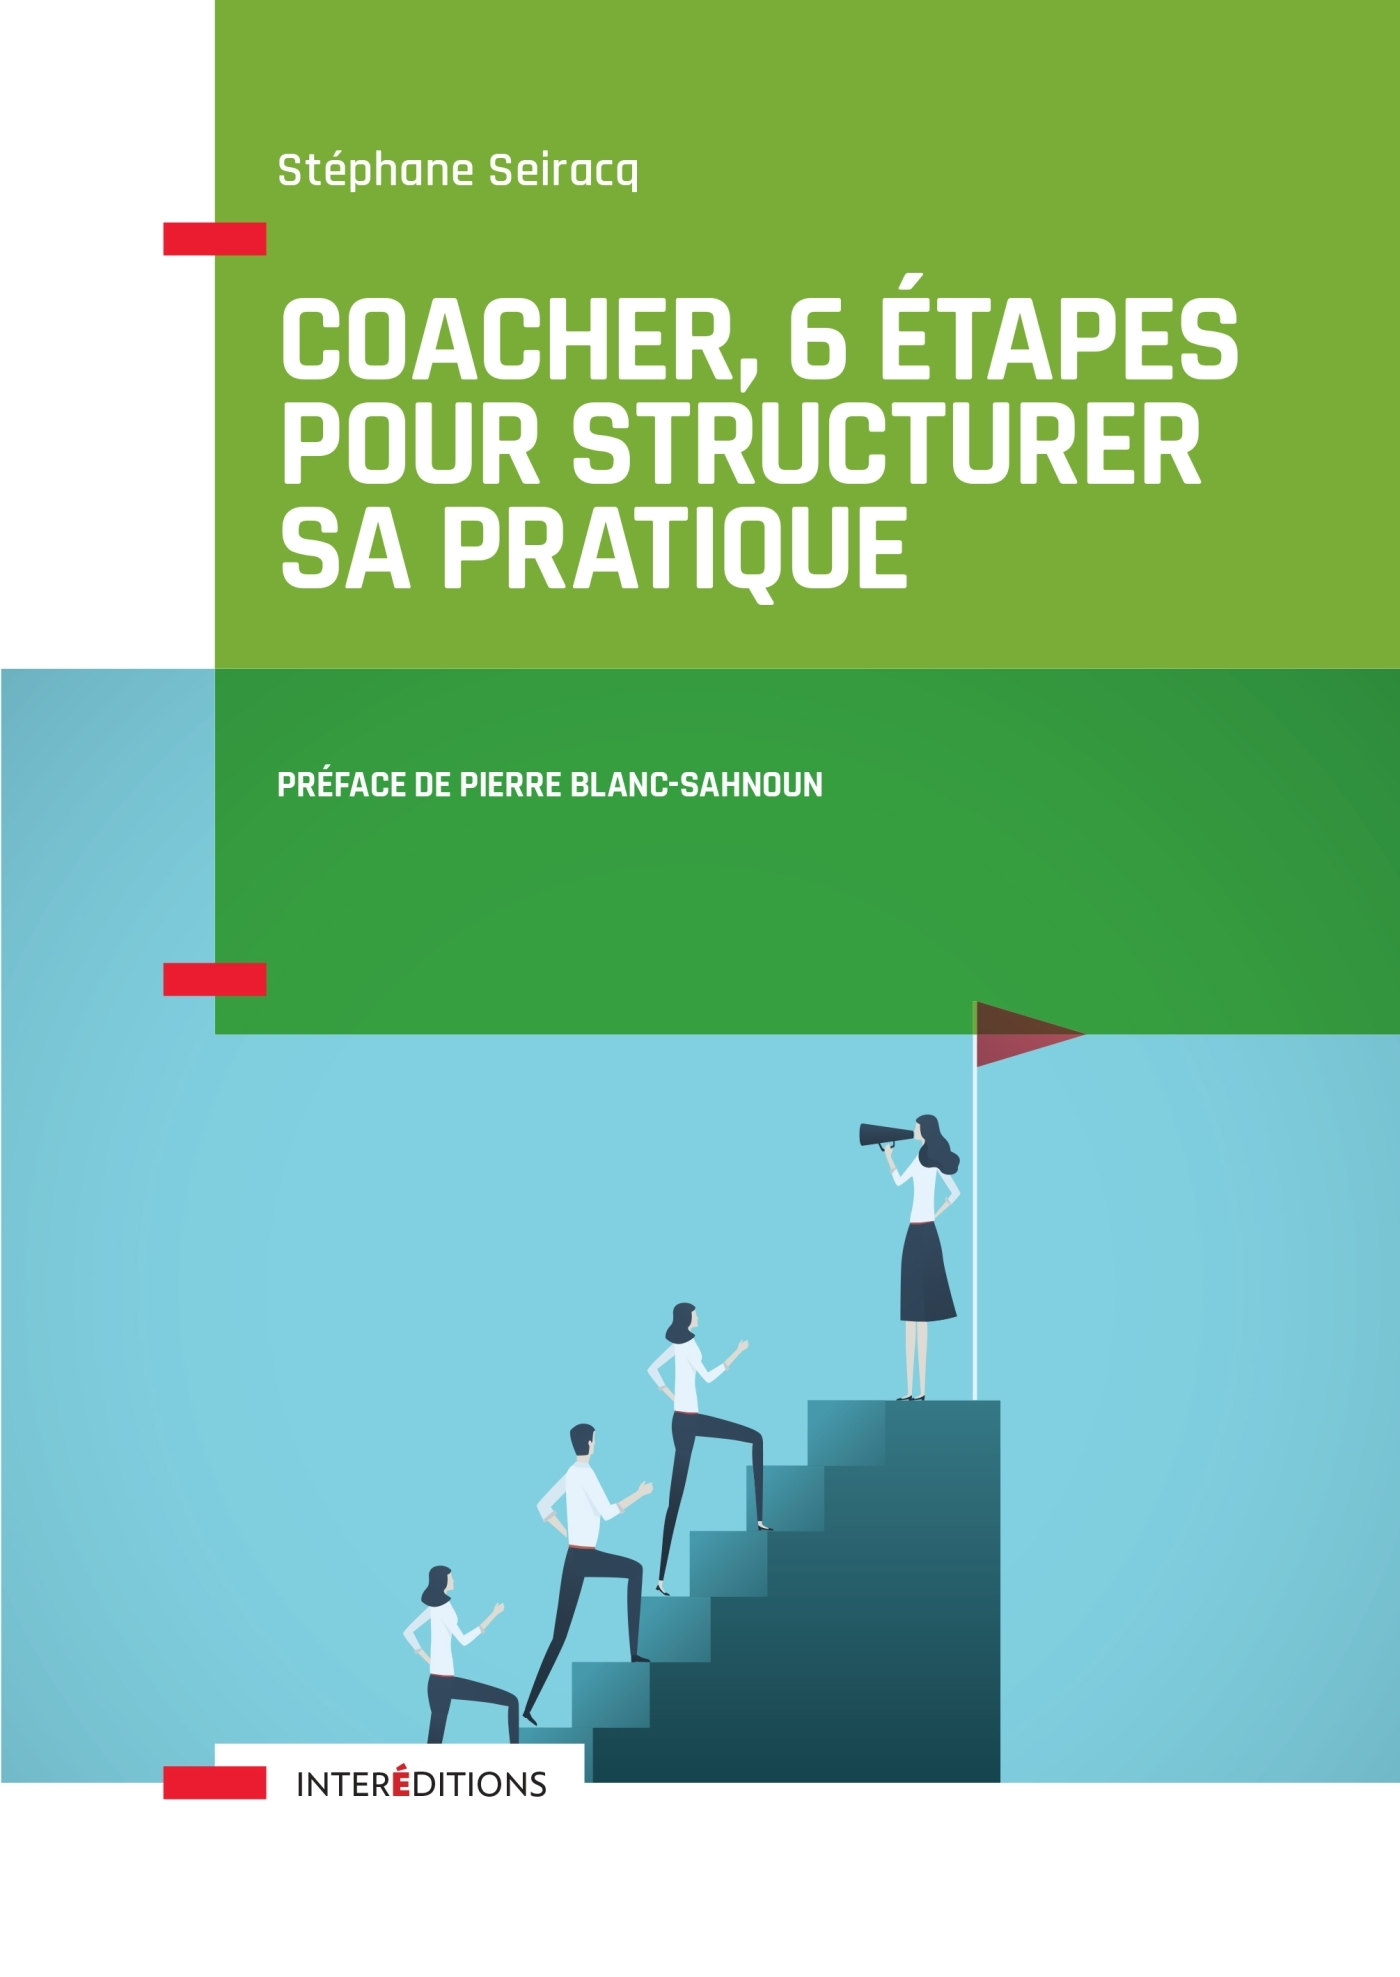 COACHER, 6 ETAPES POUR STRUCTURER SA PRATIQUE